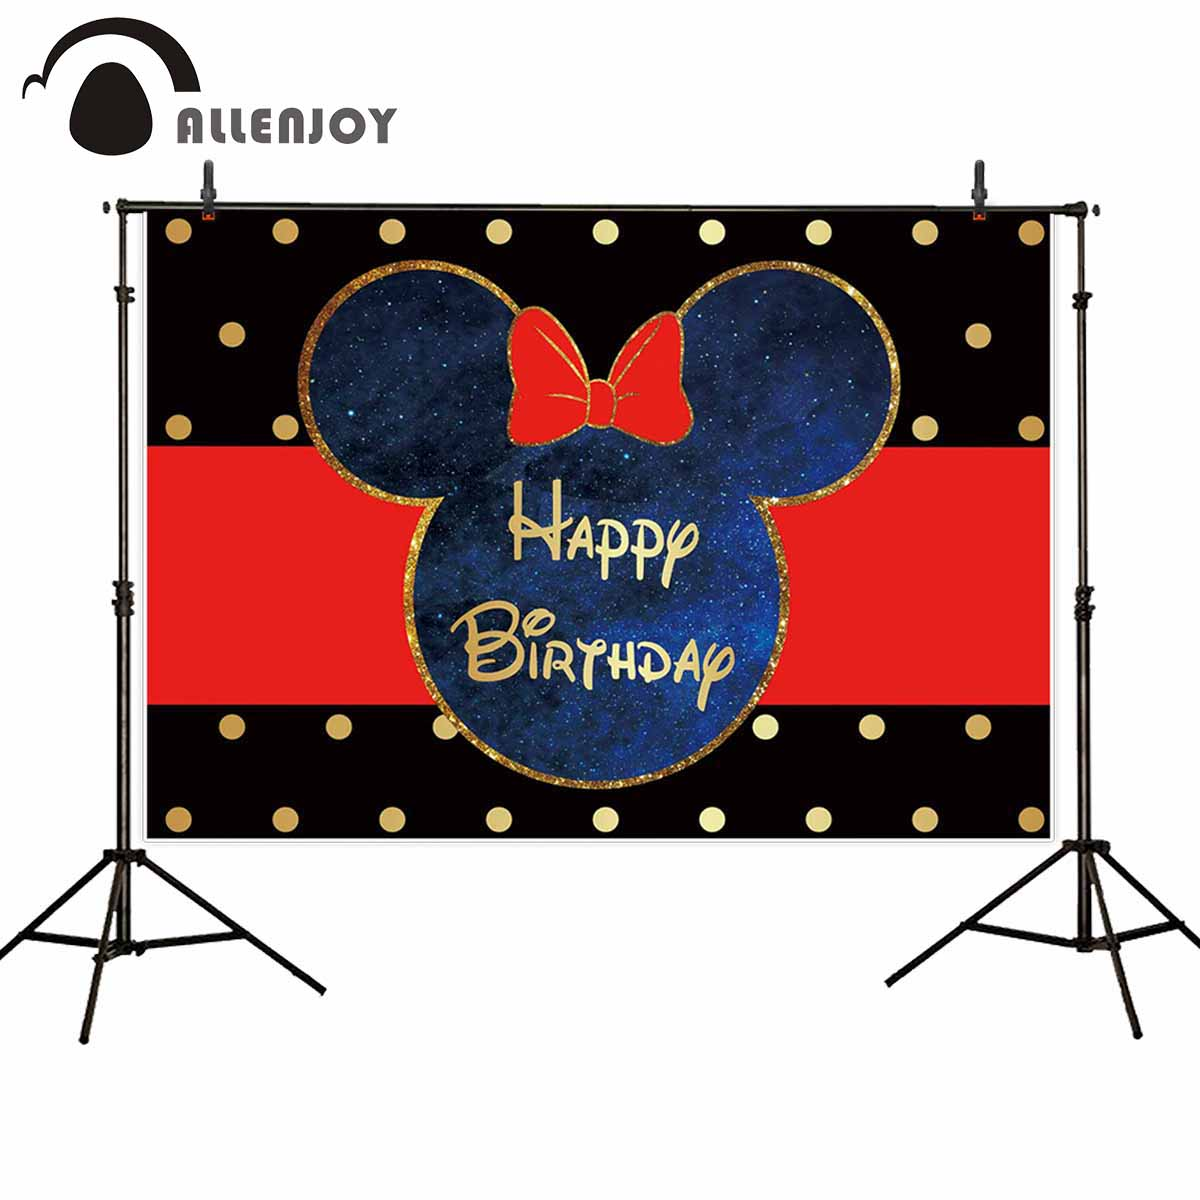 Allenjoy Backdrops Photography Mouse Golden Child Birthday Custom Photocall Backgrounds For Photo Shoots Photobooth Photophone